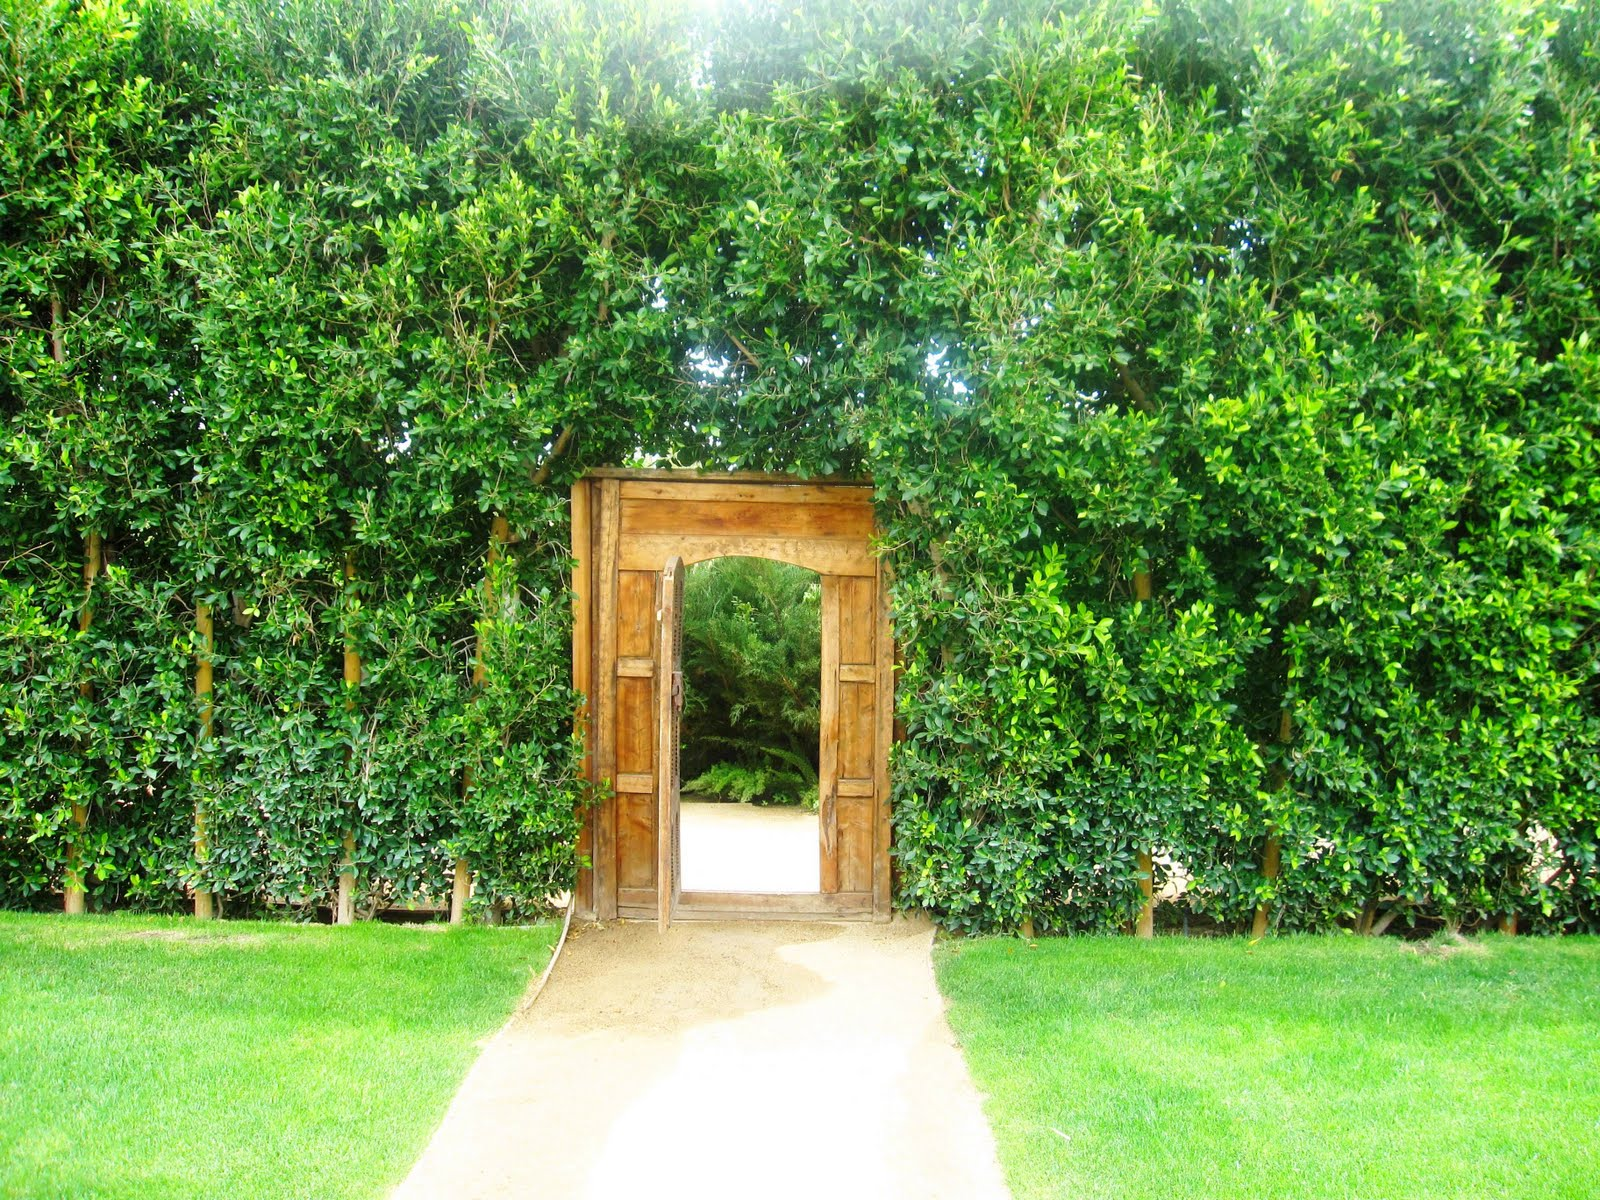 Green ficus surround a wood carved doorway leading to